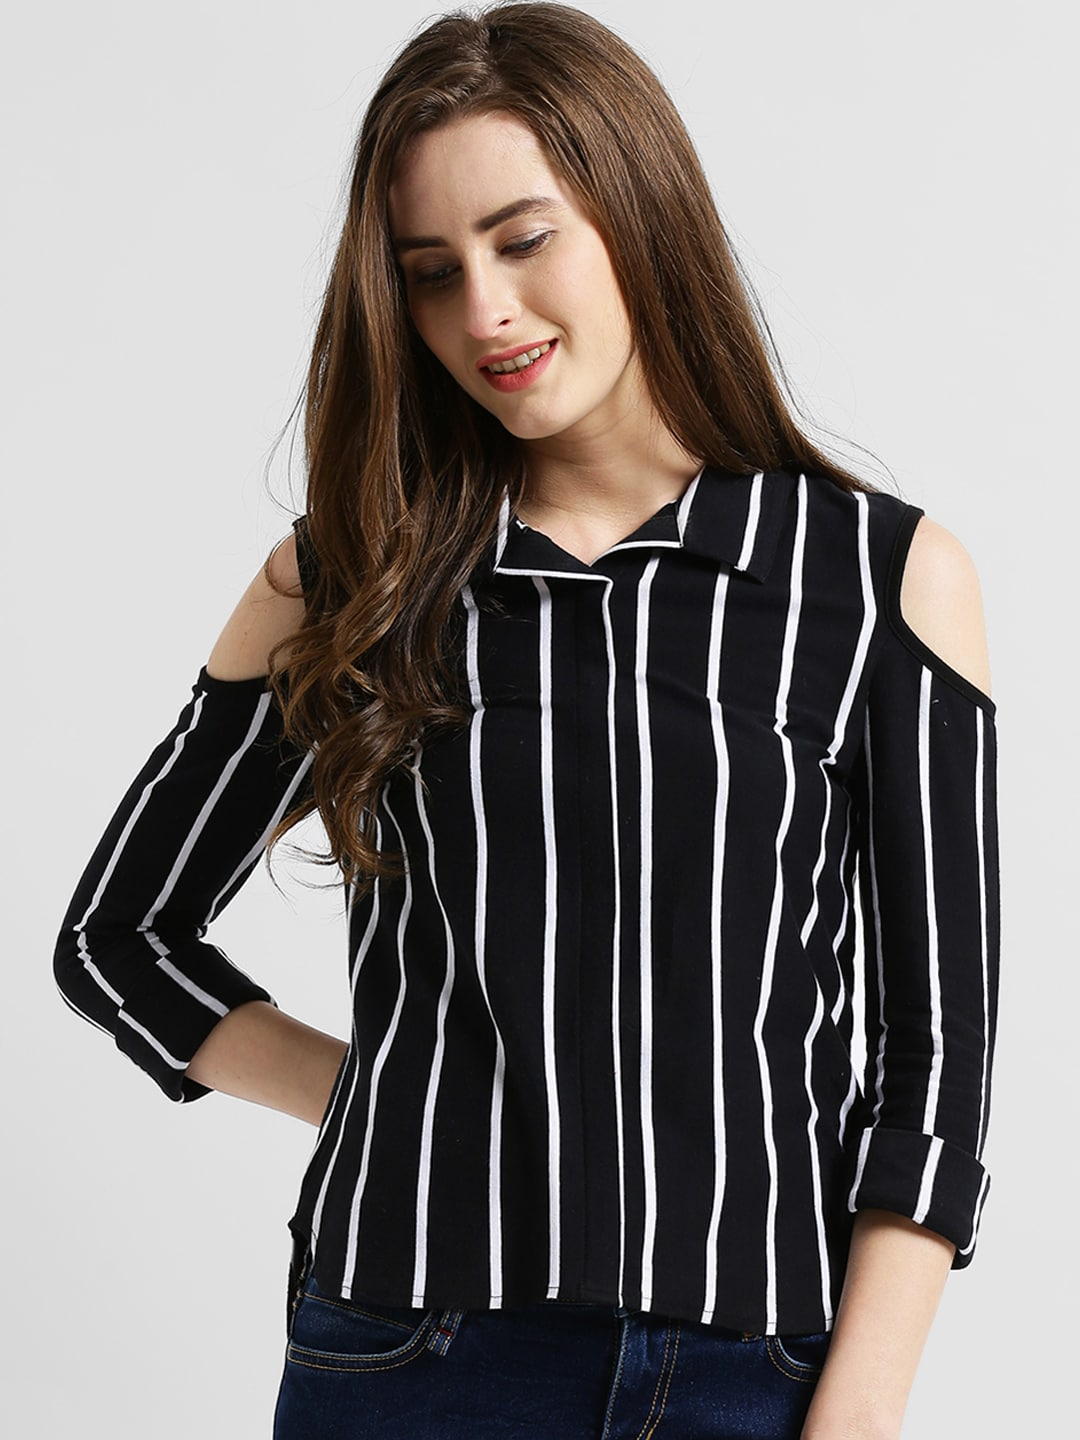 e6240d44309 Texco Clothing - Buy Women Clothing Online from Texco